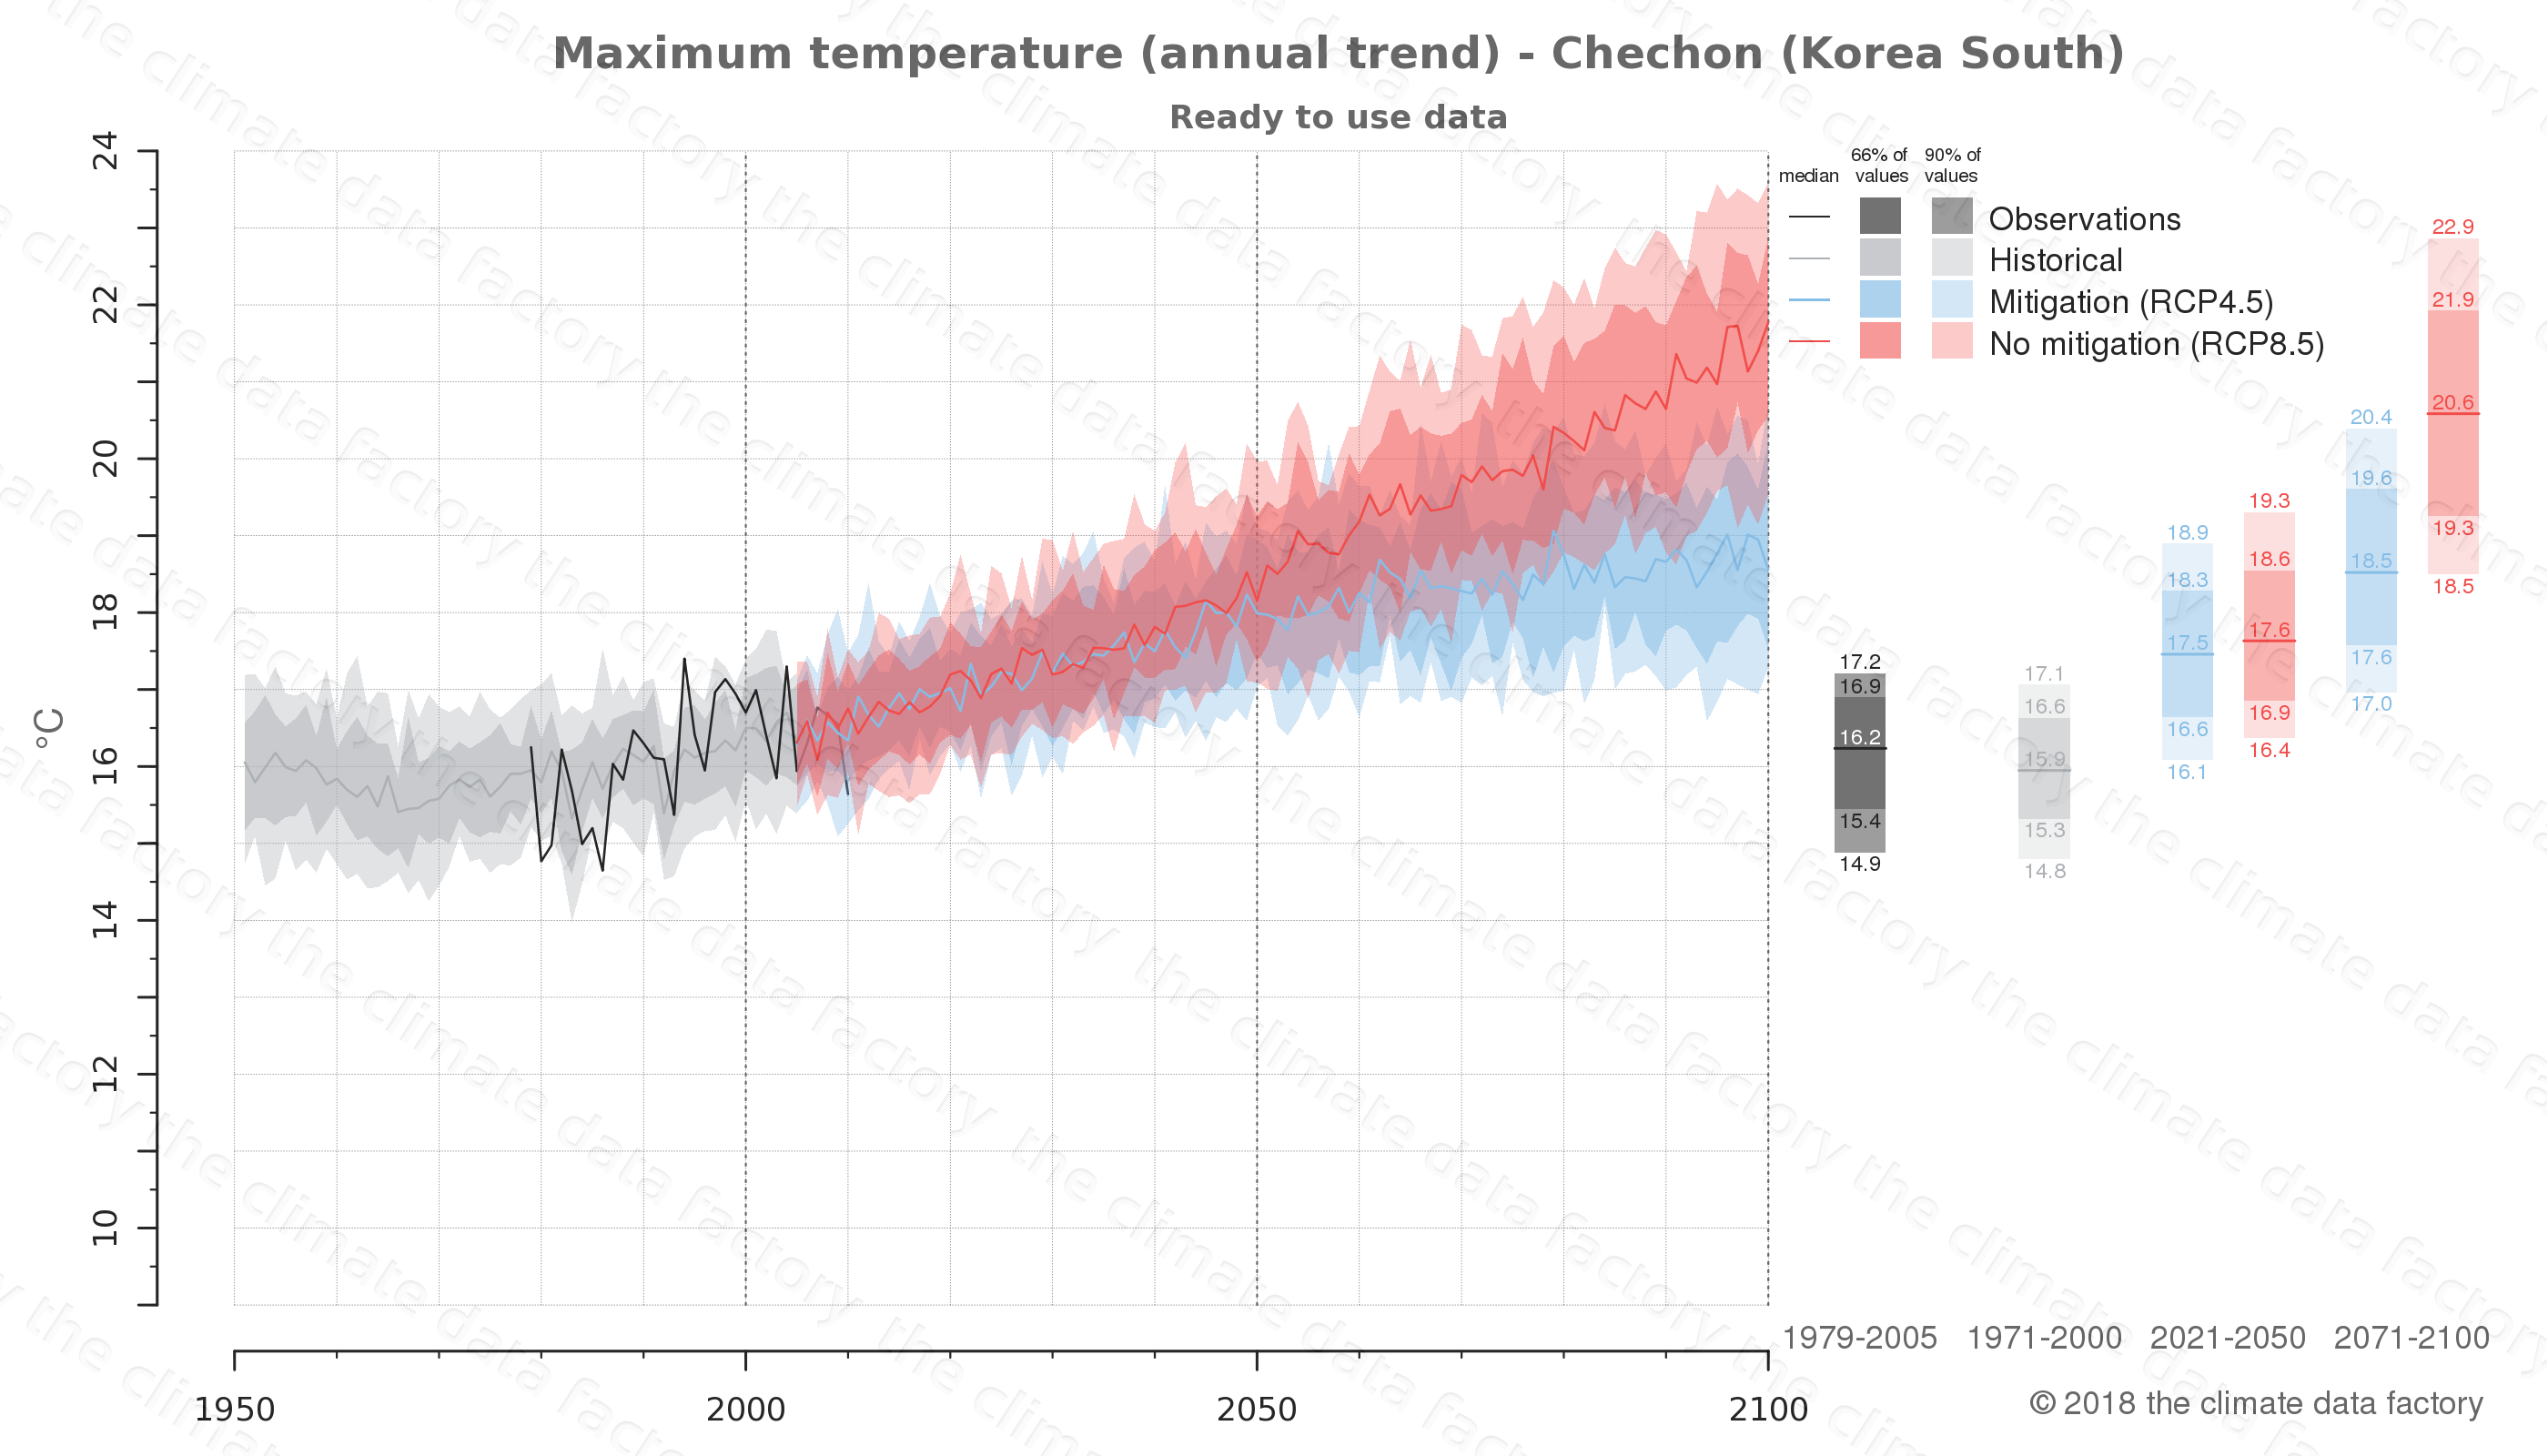 climate change data policy adaptation climate graph city data maximum-temperature chechon south korea